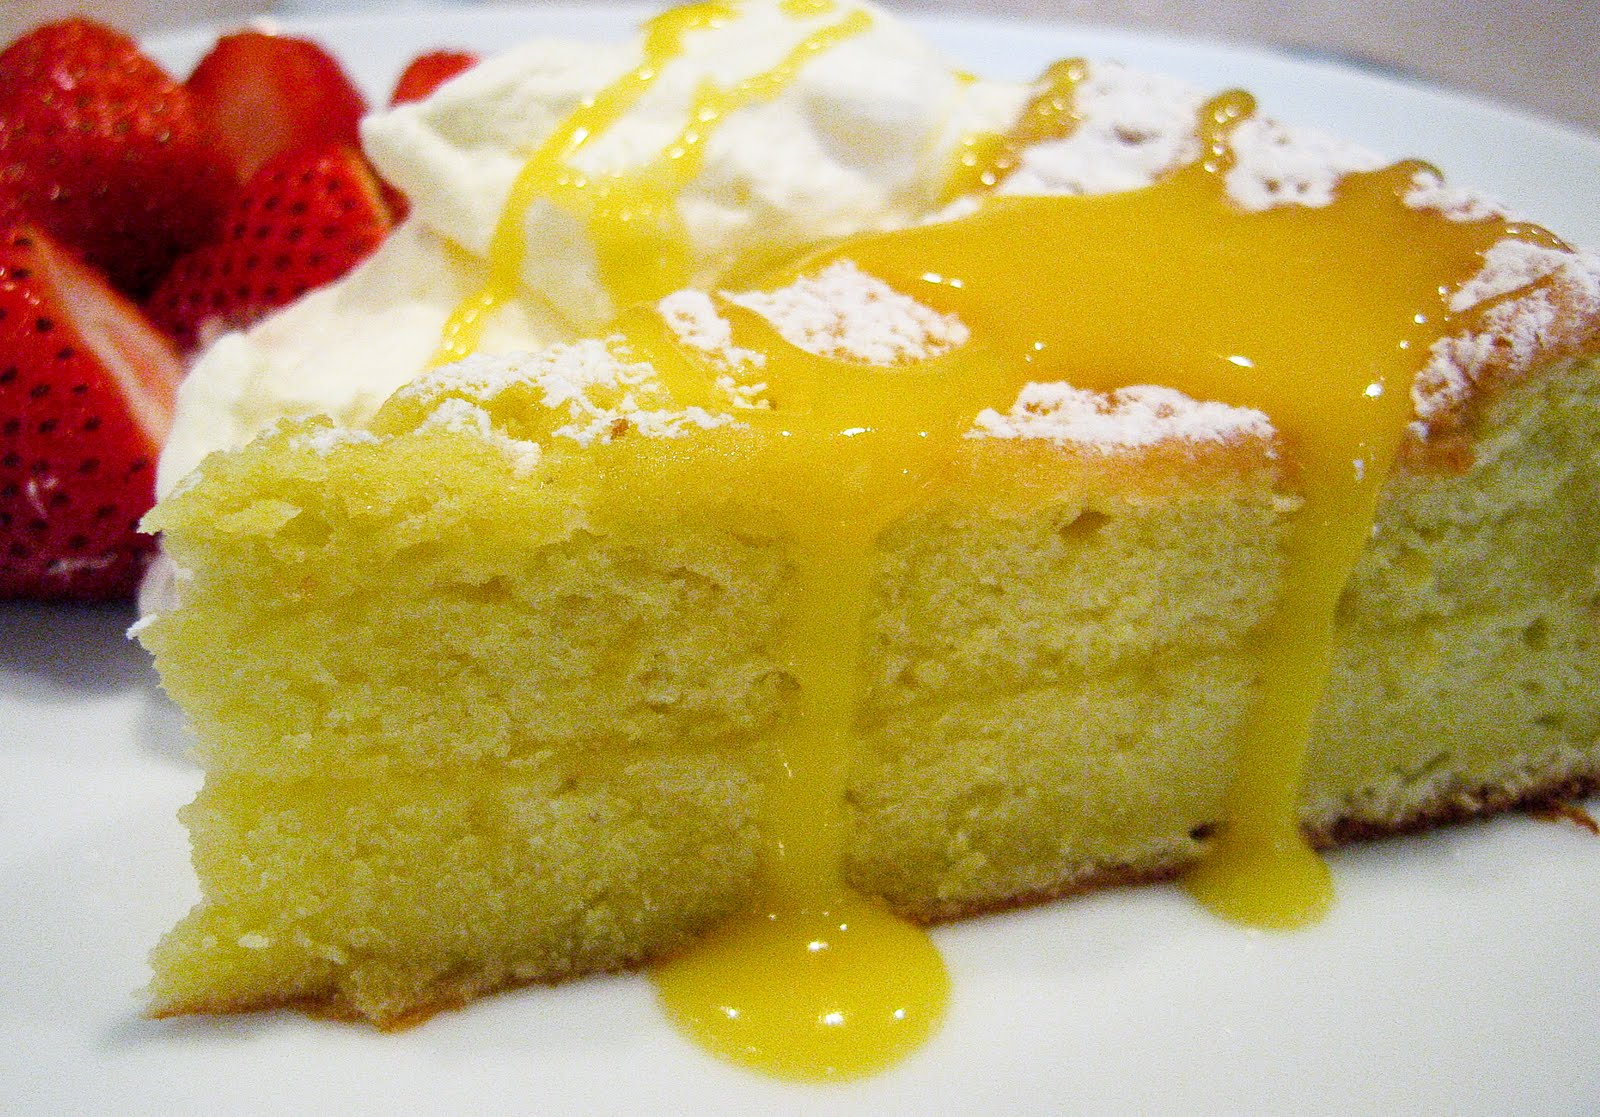 Cake Recipes Using Lemon Curd: (Rustic) Provençal Lemon Cake With Lemon Curd & Whipped